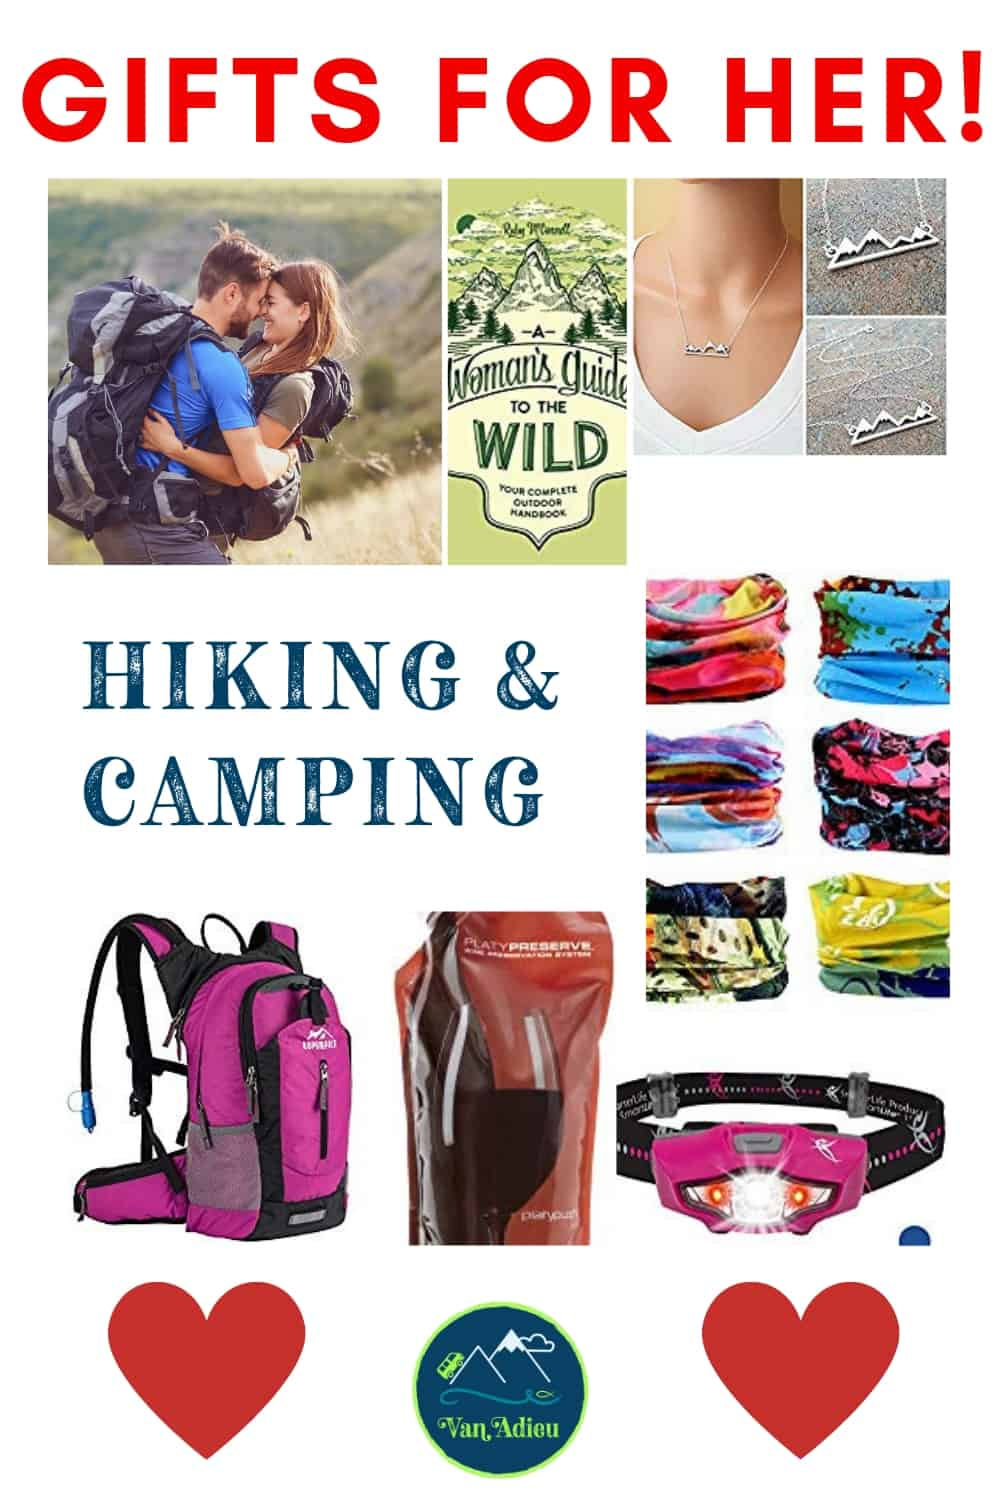 ... and The Gifts are for THE WOMEN in your life that are Hikers, Campers, ...